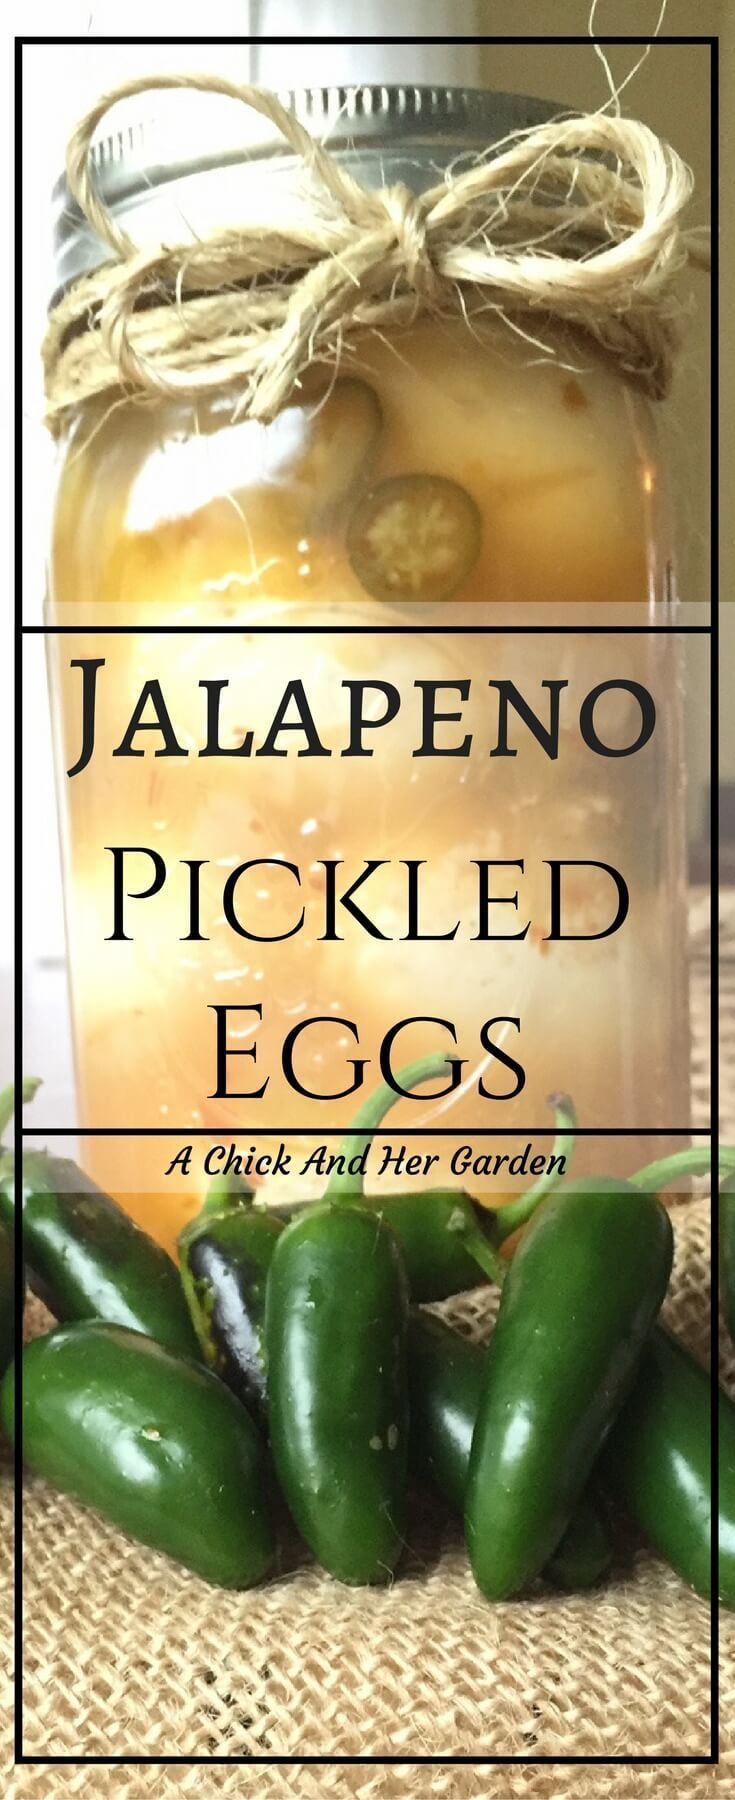 If you like pickled eggs and you like spicy, this is the perfect treat! Eat as a snack, appetizer or add on top of salads!